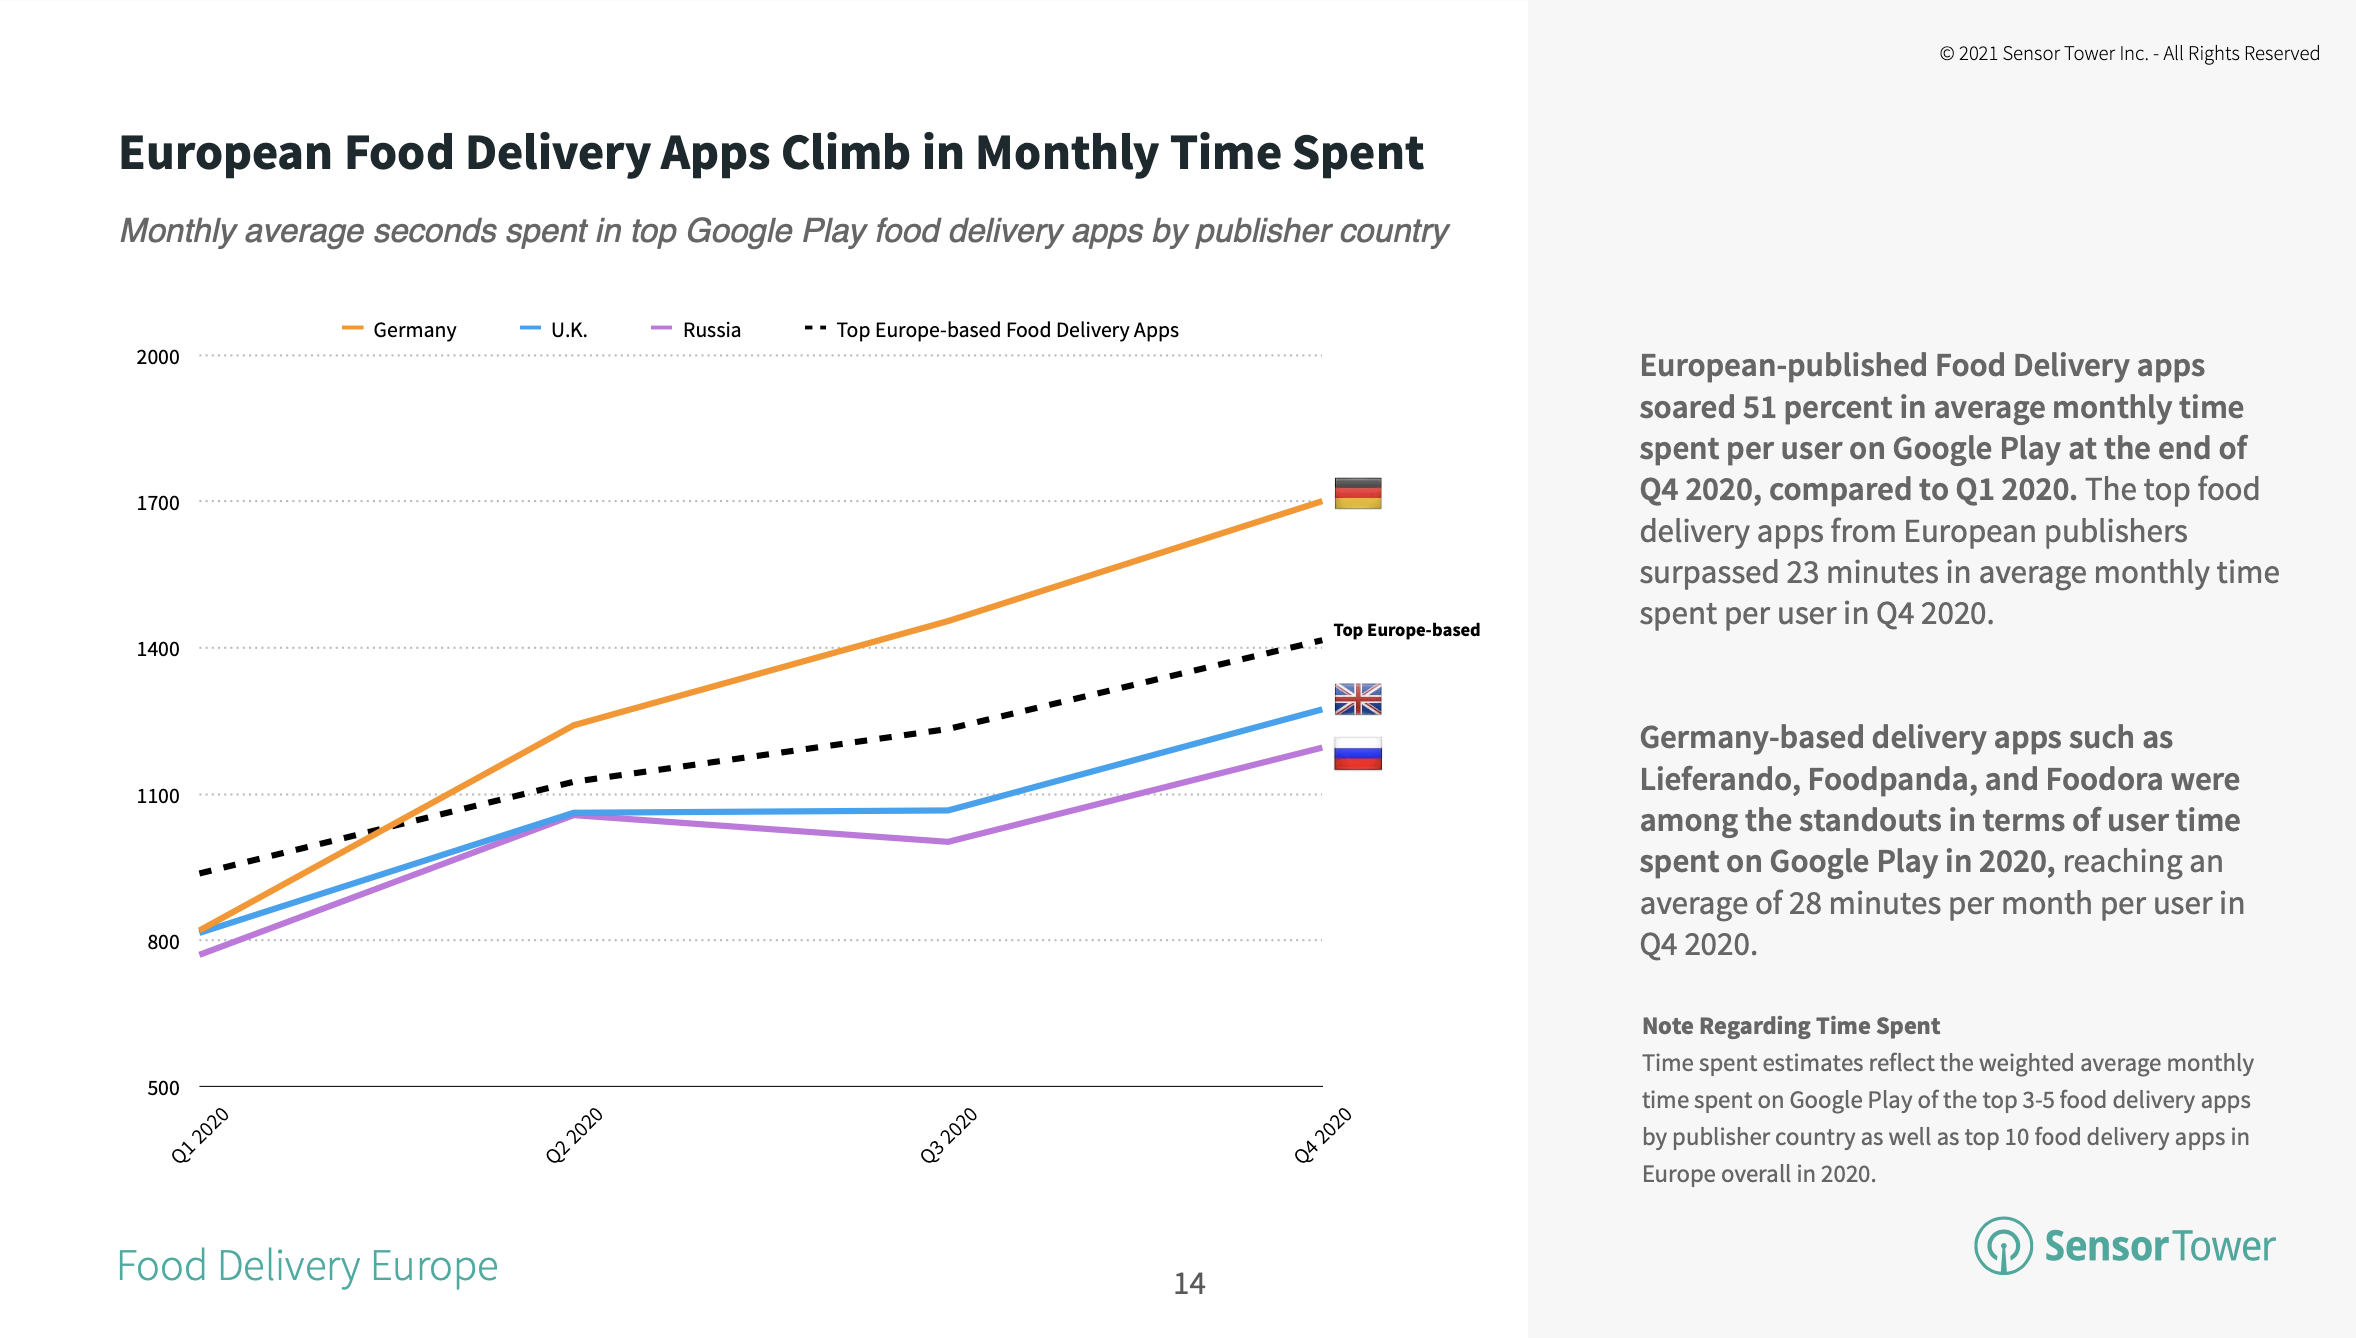 The top food delivery apps in Europe surpassed 1,400 seconds in monthly time spent in Q4 2020.